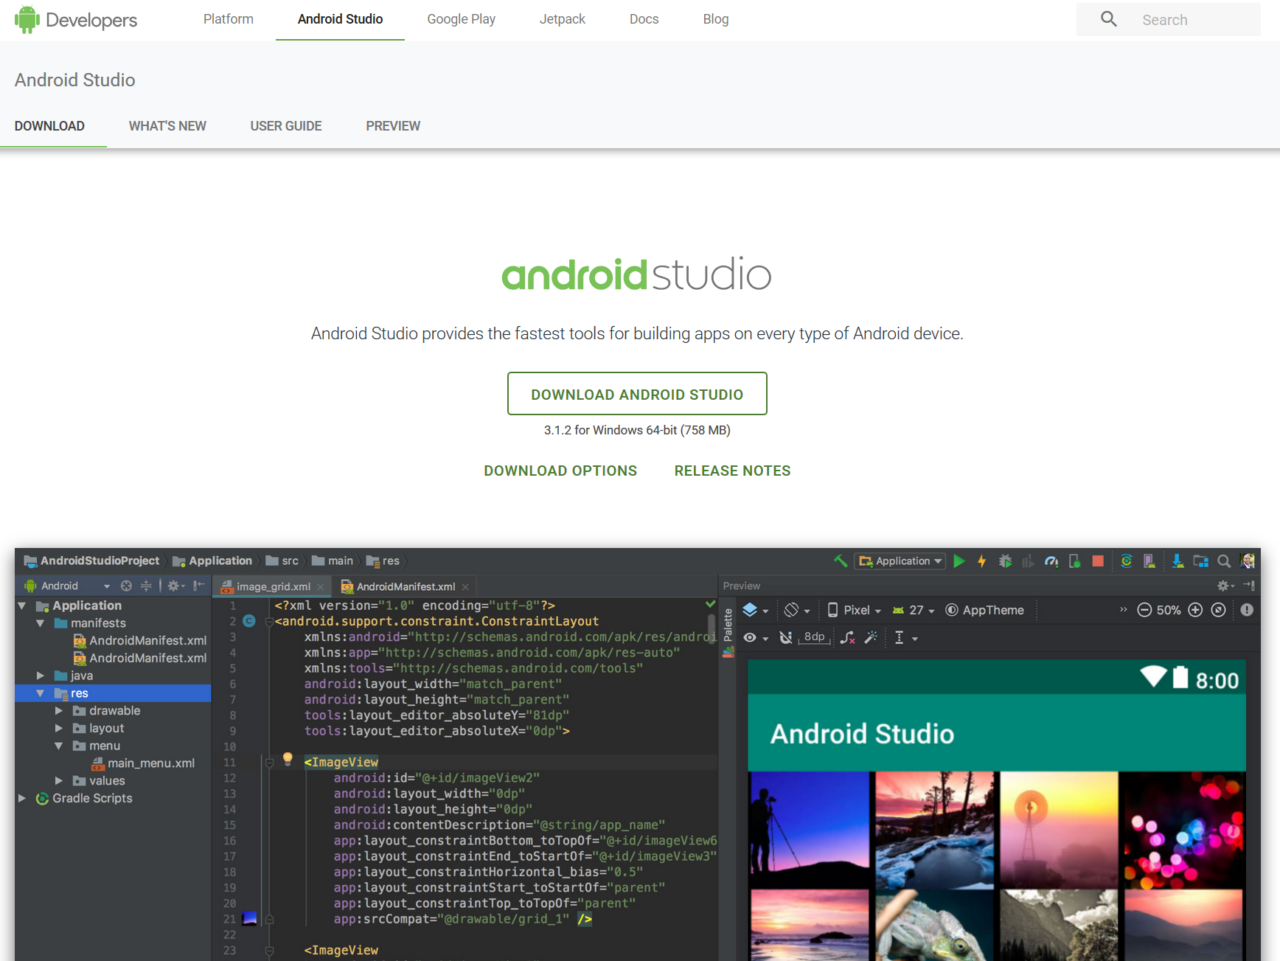 Android Studio Web Page